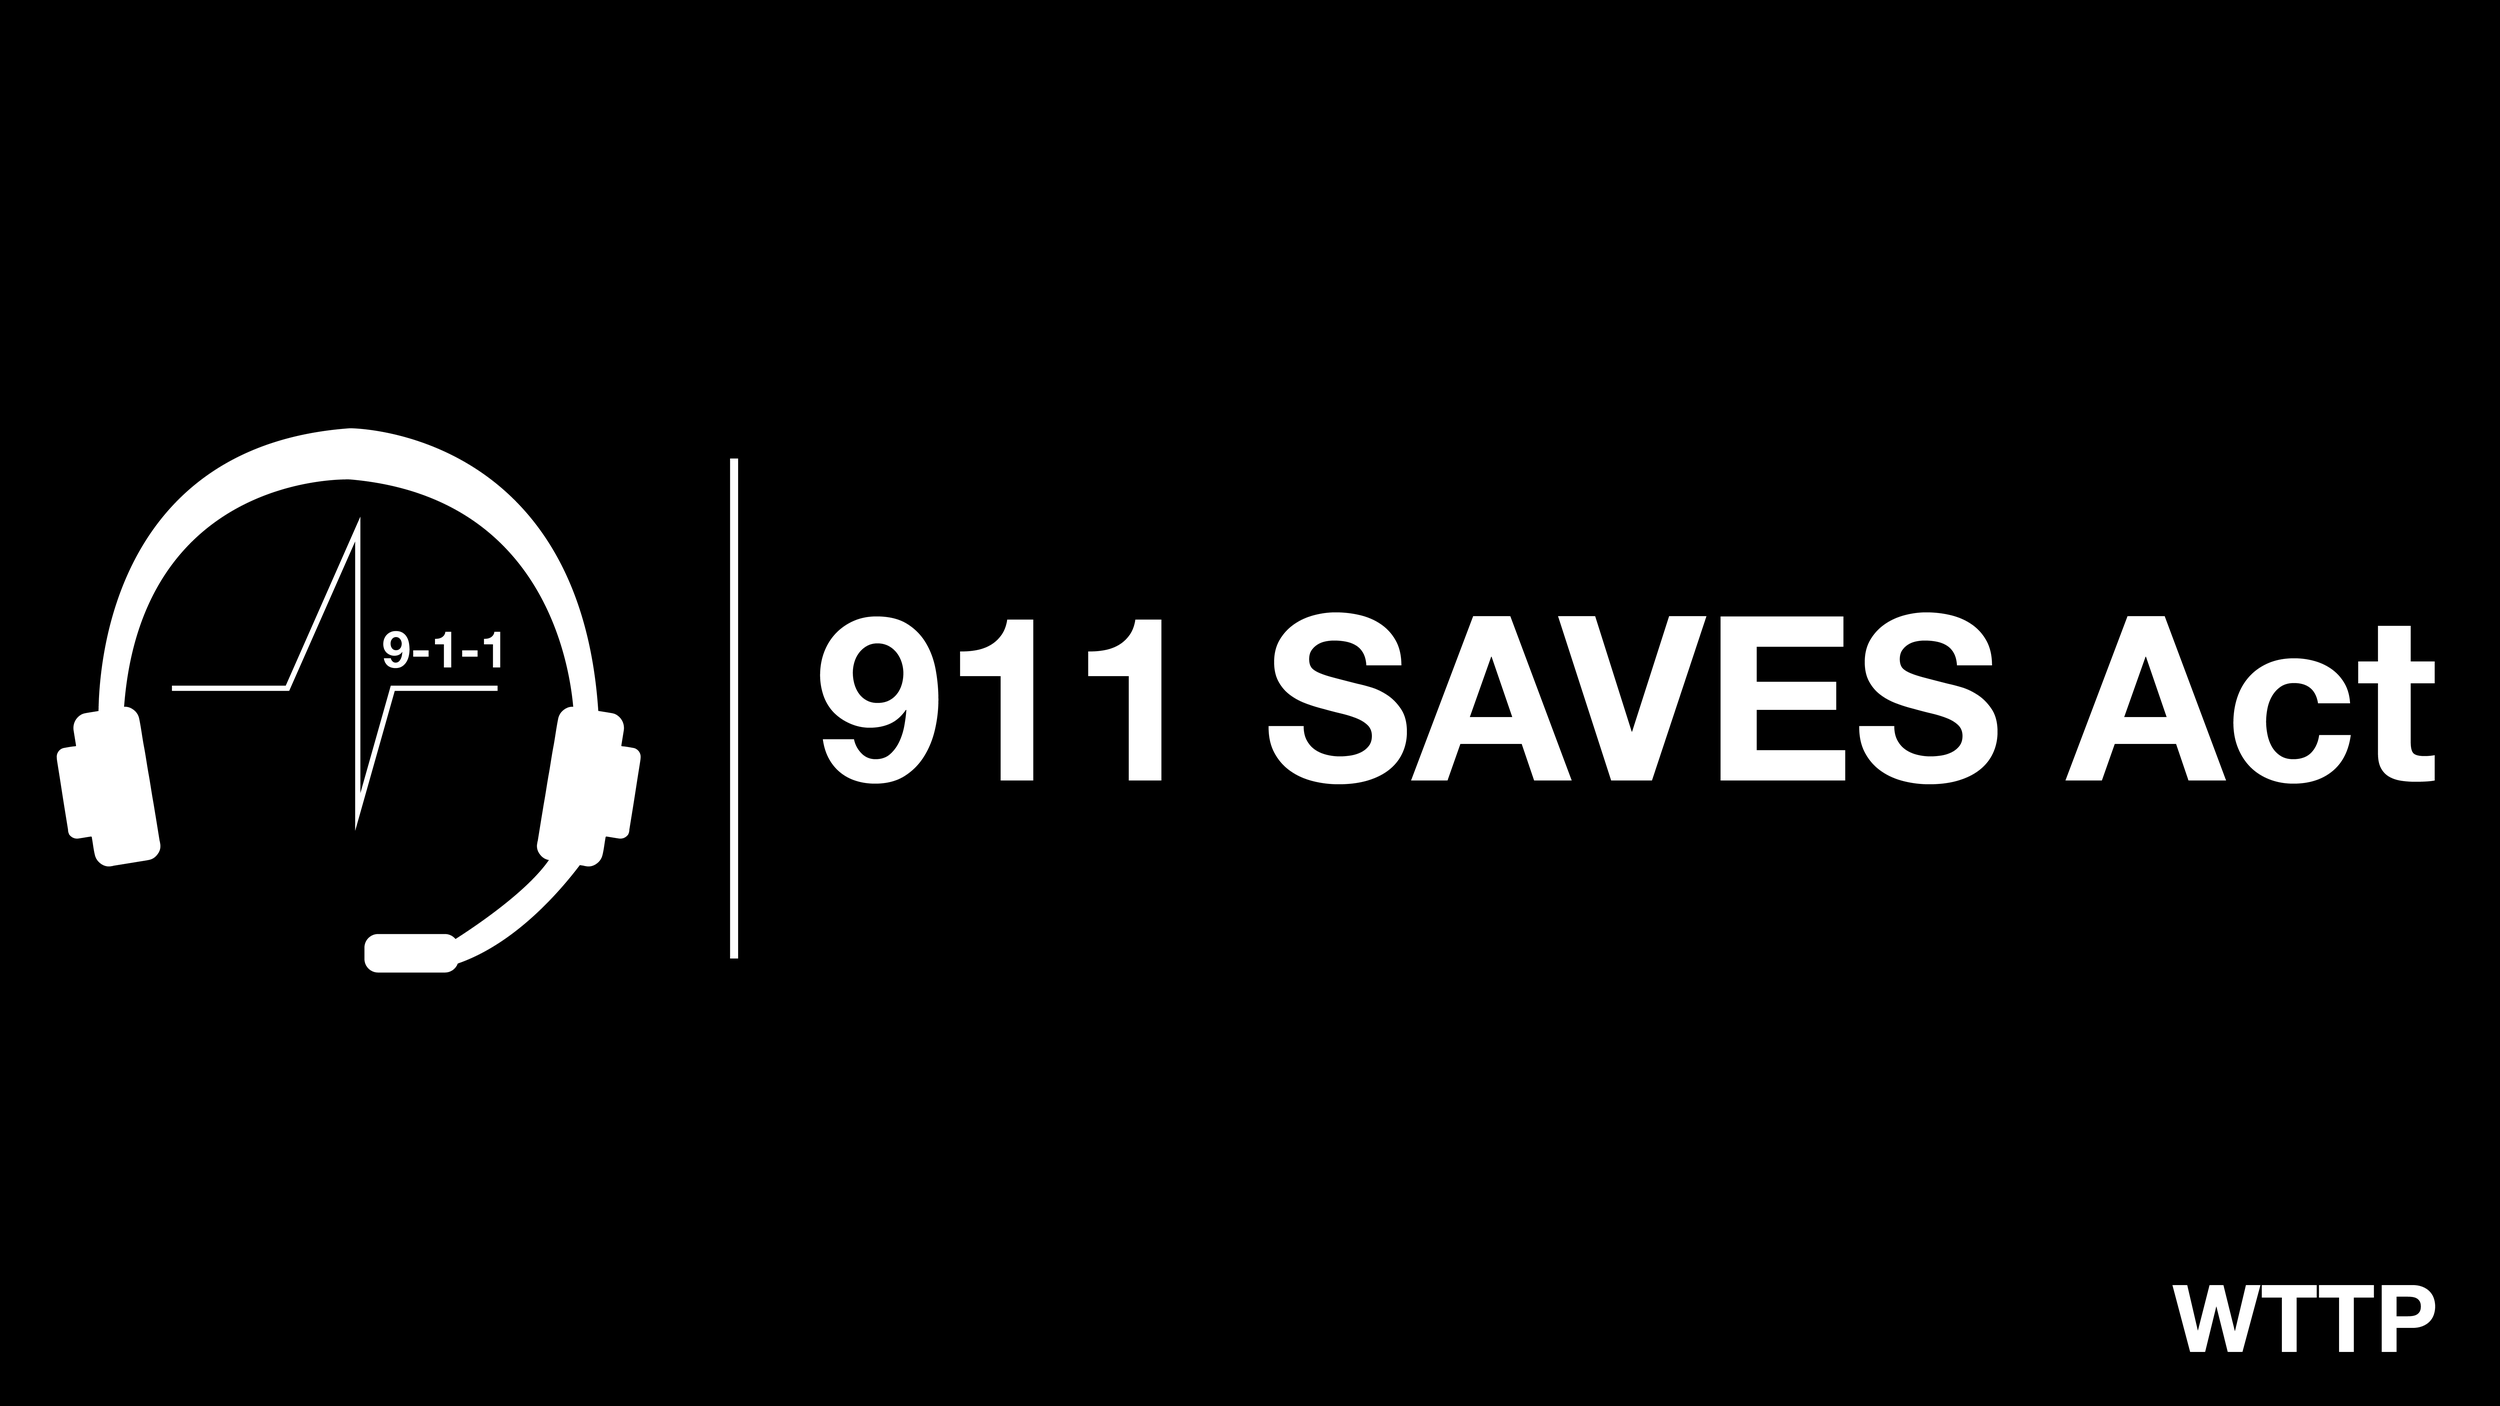 911savesact-01.png